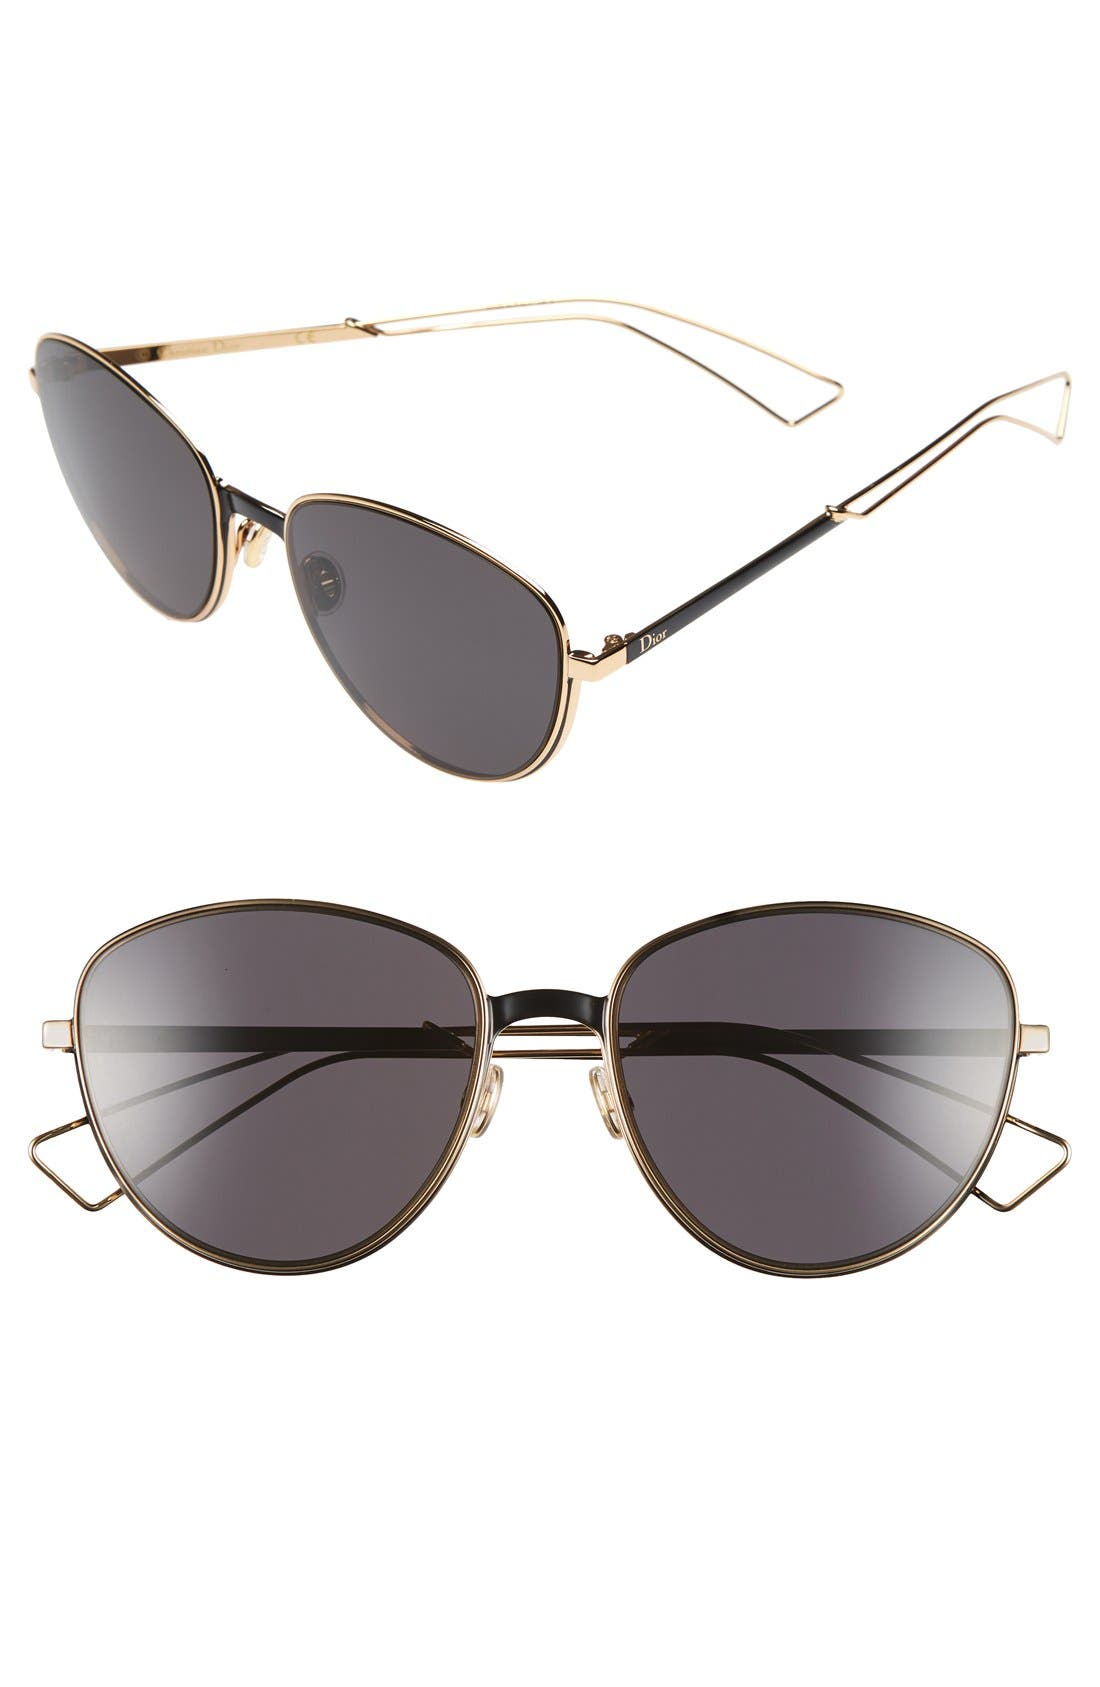 'Ultradior' 56mm Aviator Sunglasses